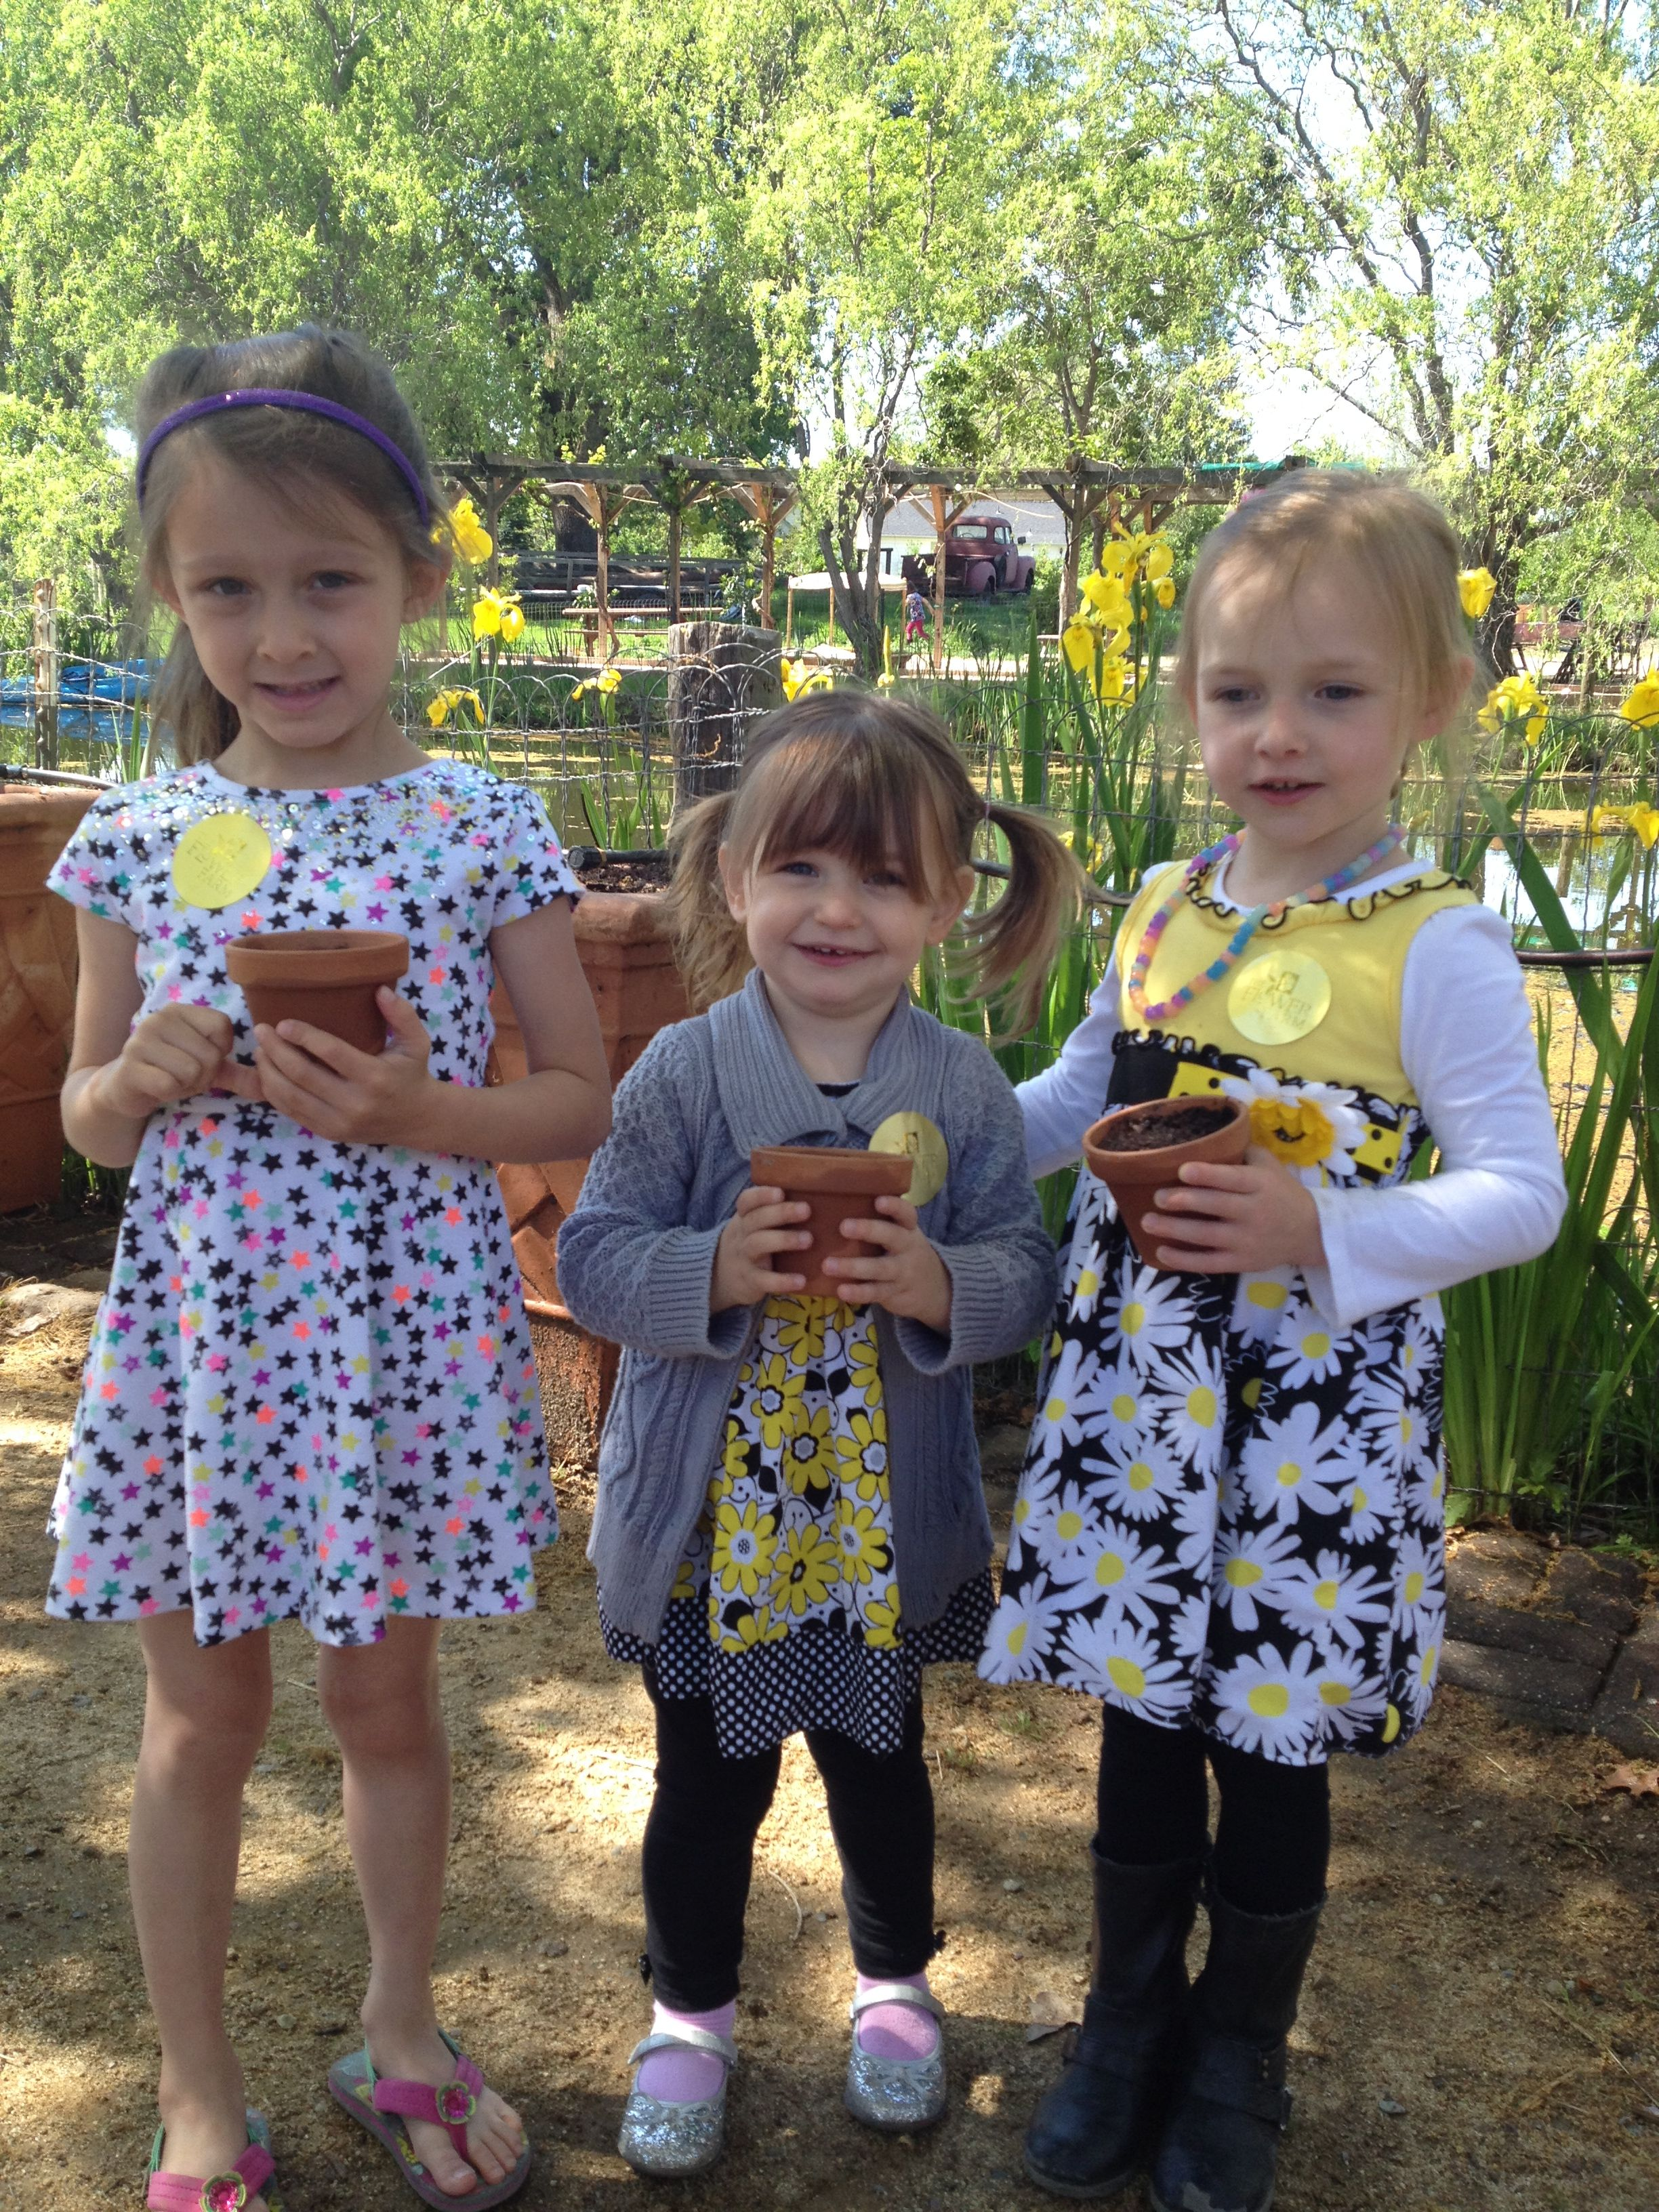 Little girls with their newly planted seedlings.